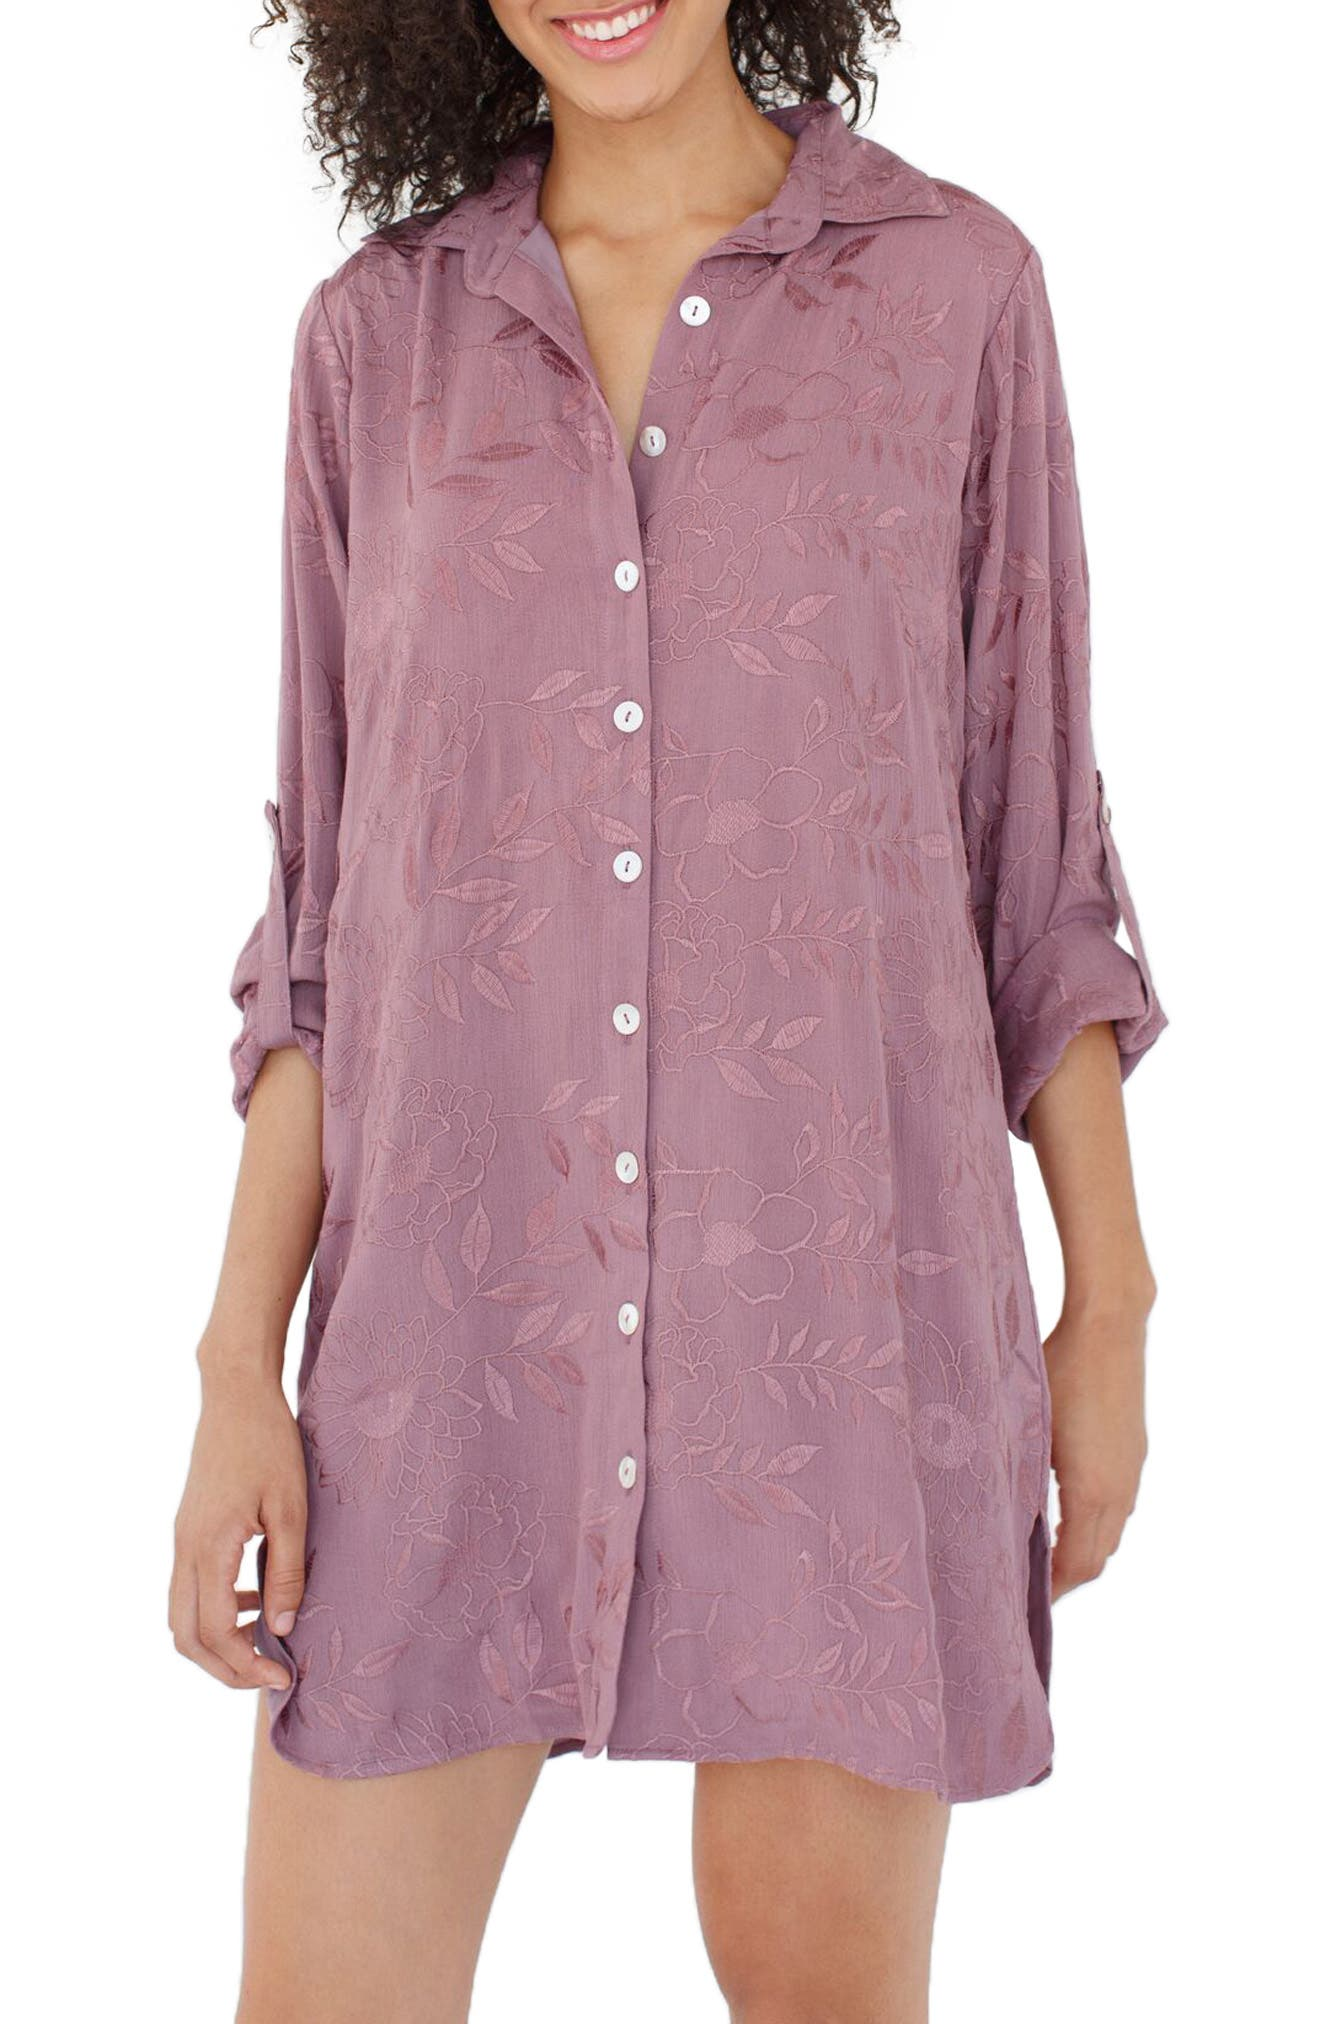 Floral Embroidered Nightshirt,                             Main thumbnail 1, color,                             510